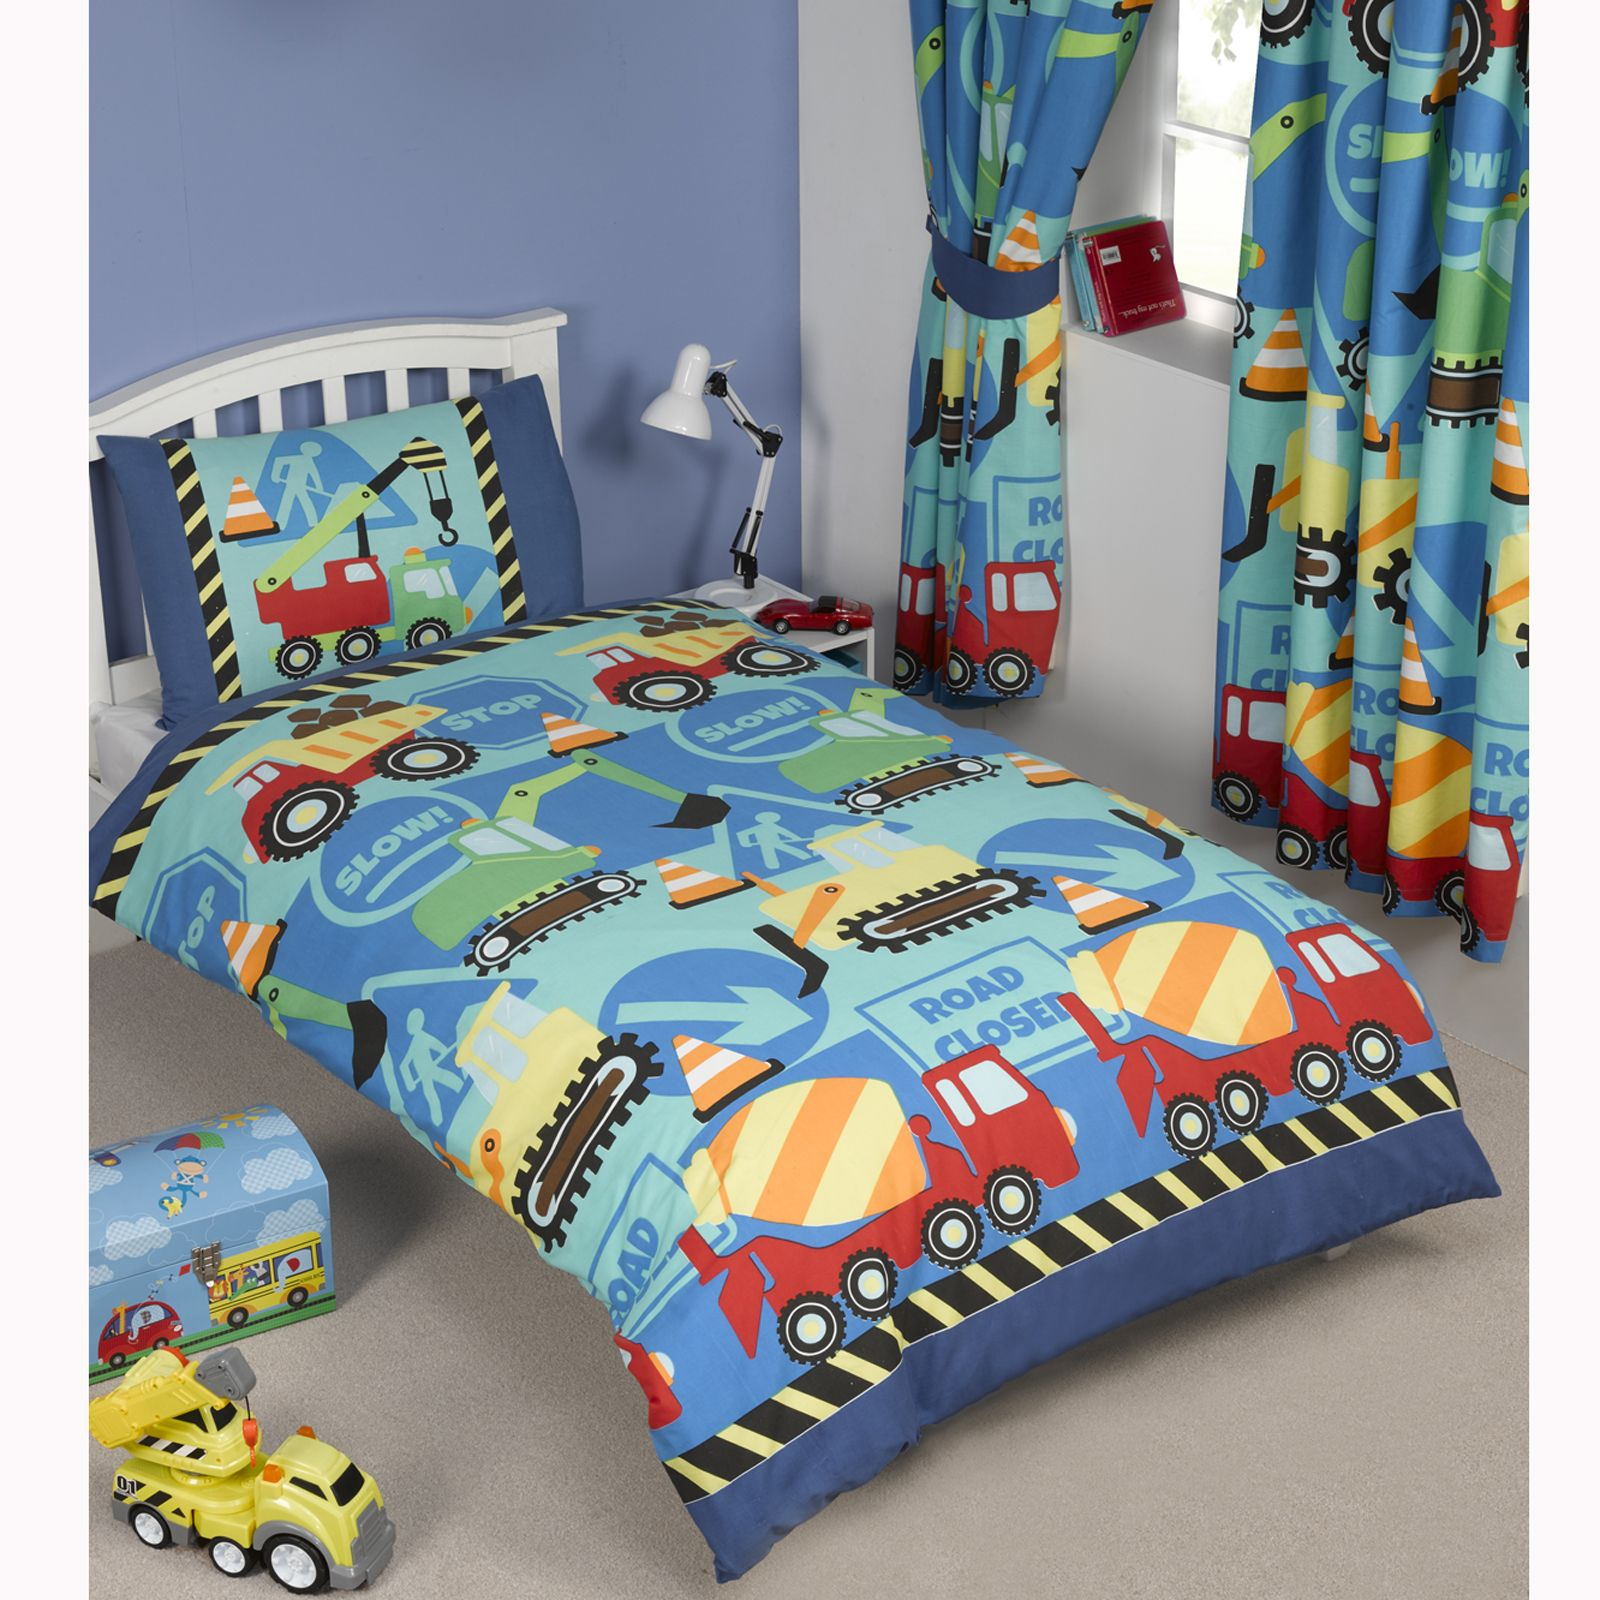 junior toddler duvet cover sets cot bedding unicorn dinosaur solar  - junior toddler duvet cover sets cot bedding unicorn dinosaur solar systemsnew  ebay